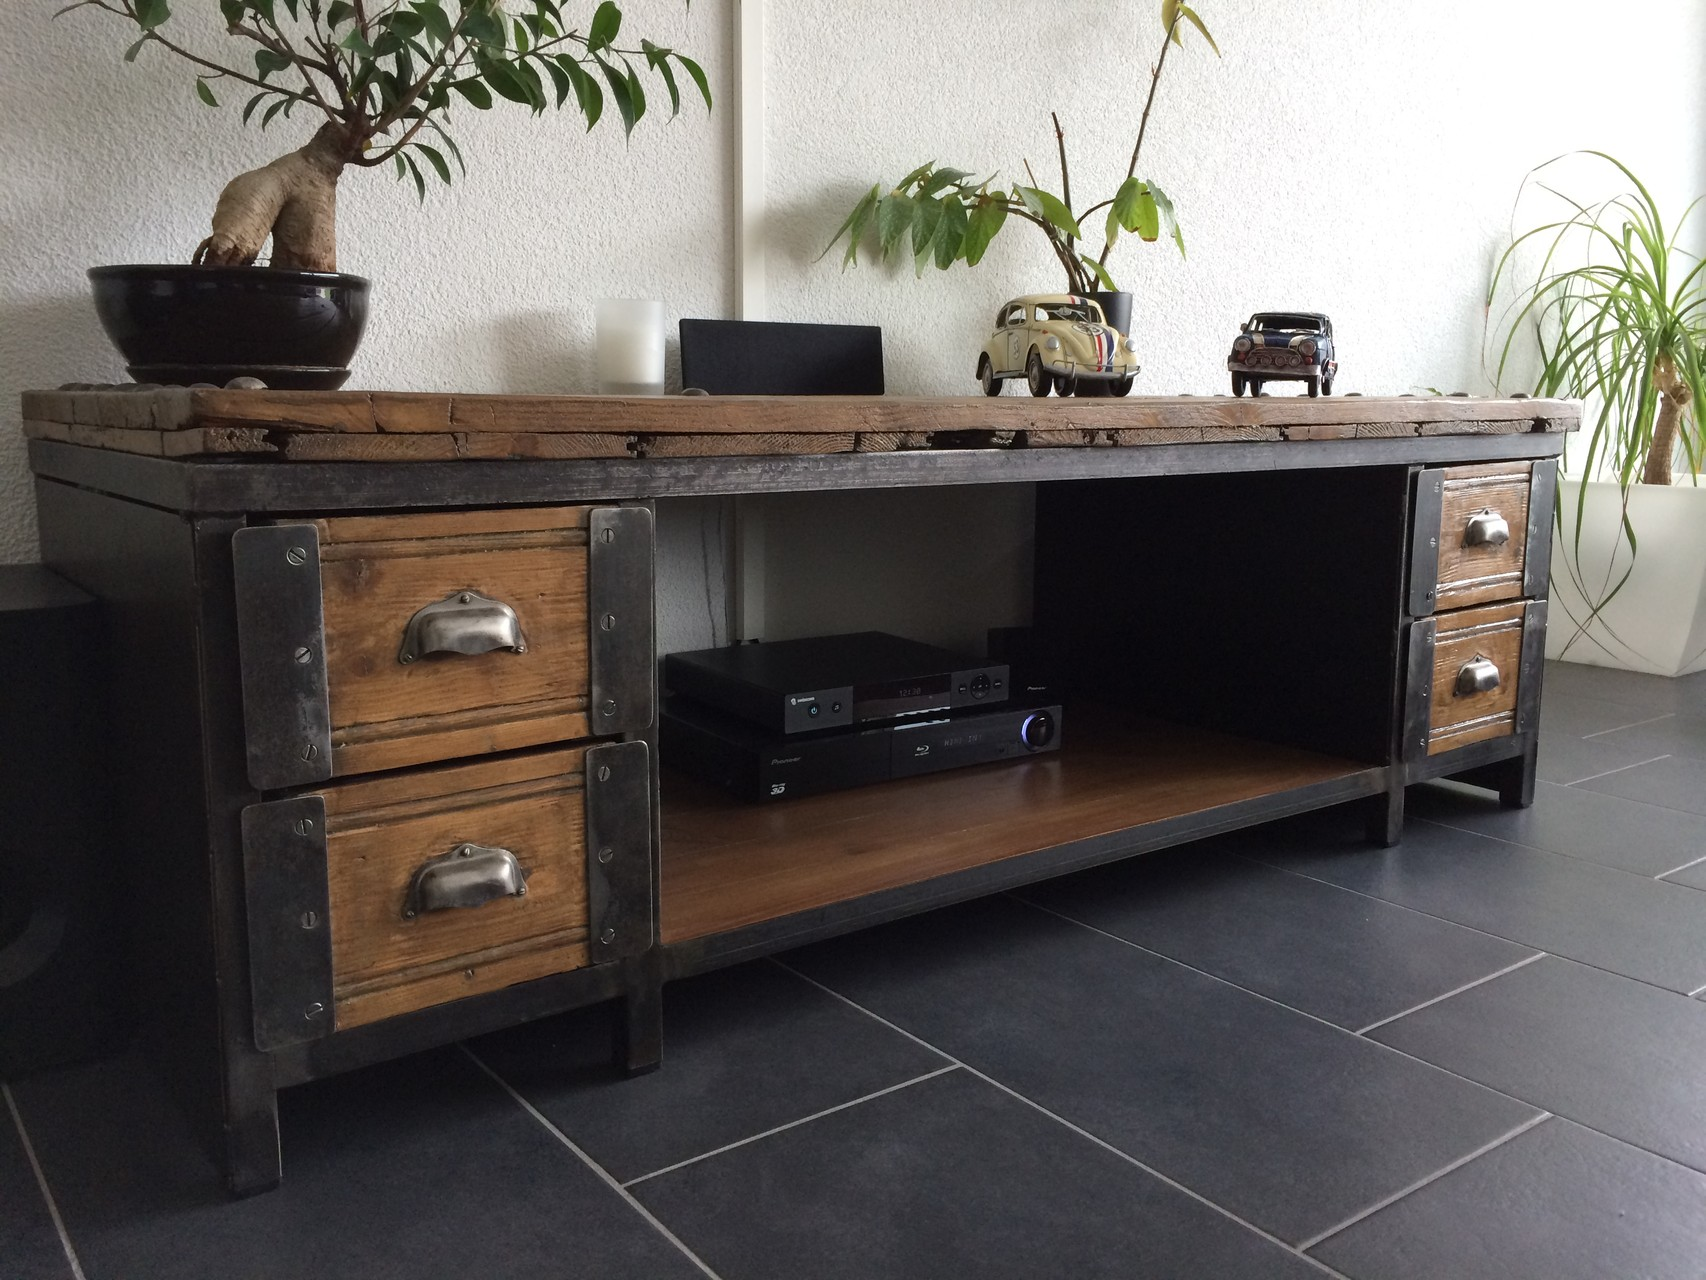 Table basse meuble tv industriel atelier vintage for Meuble retro industriel